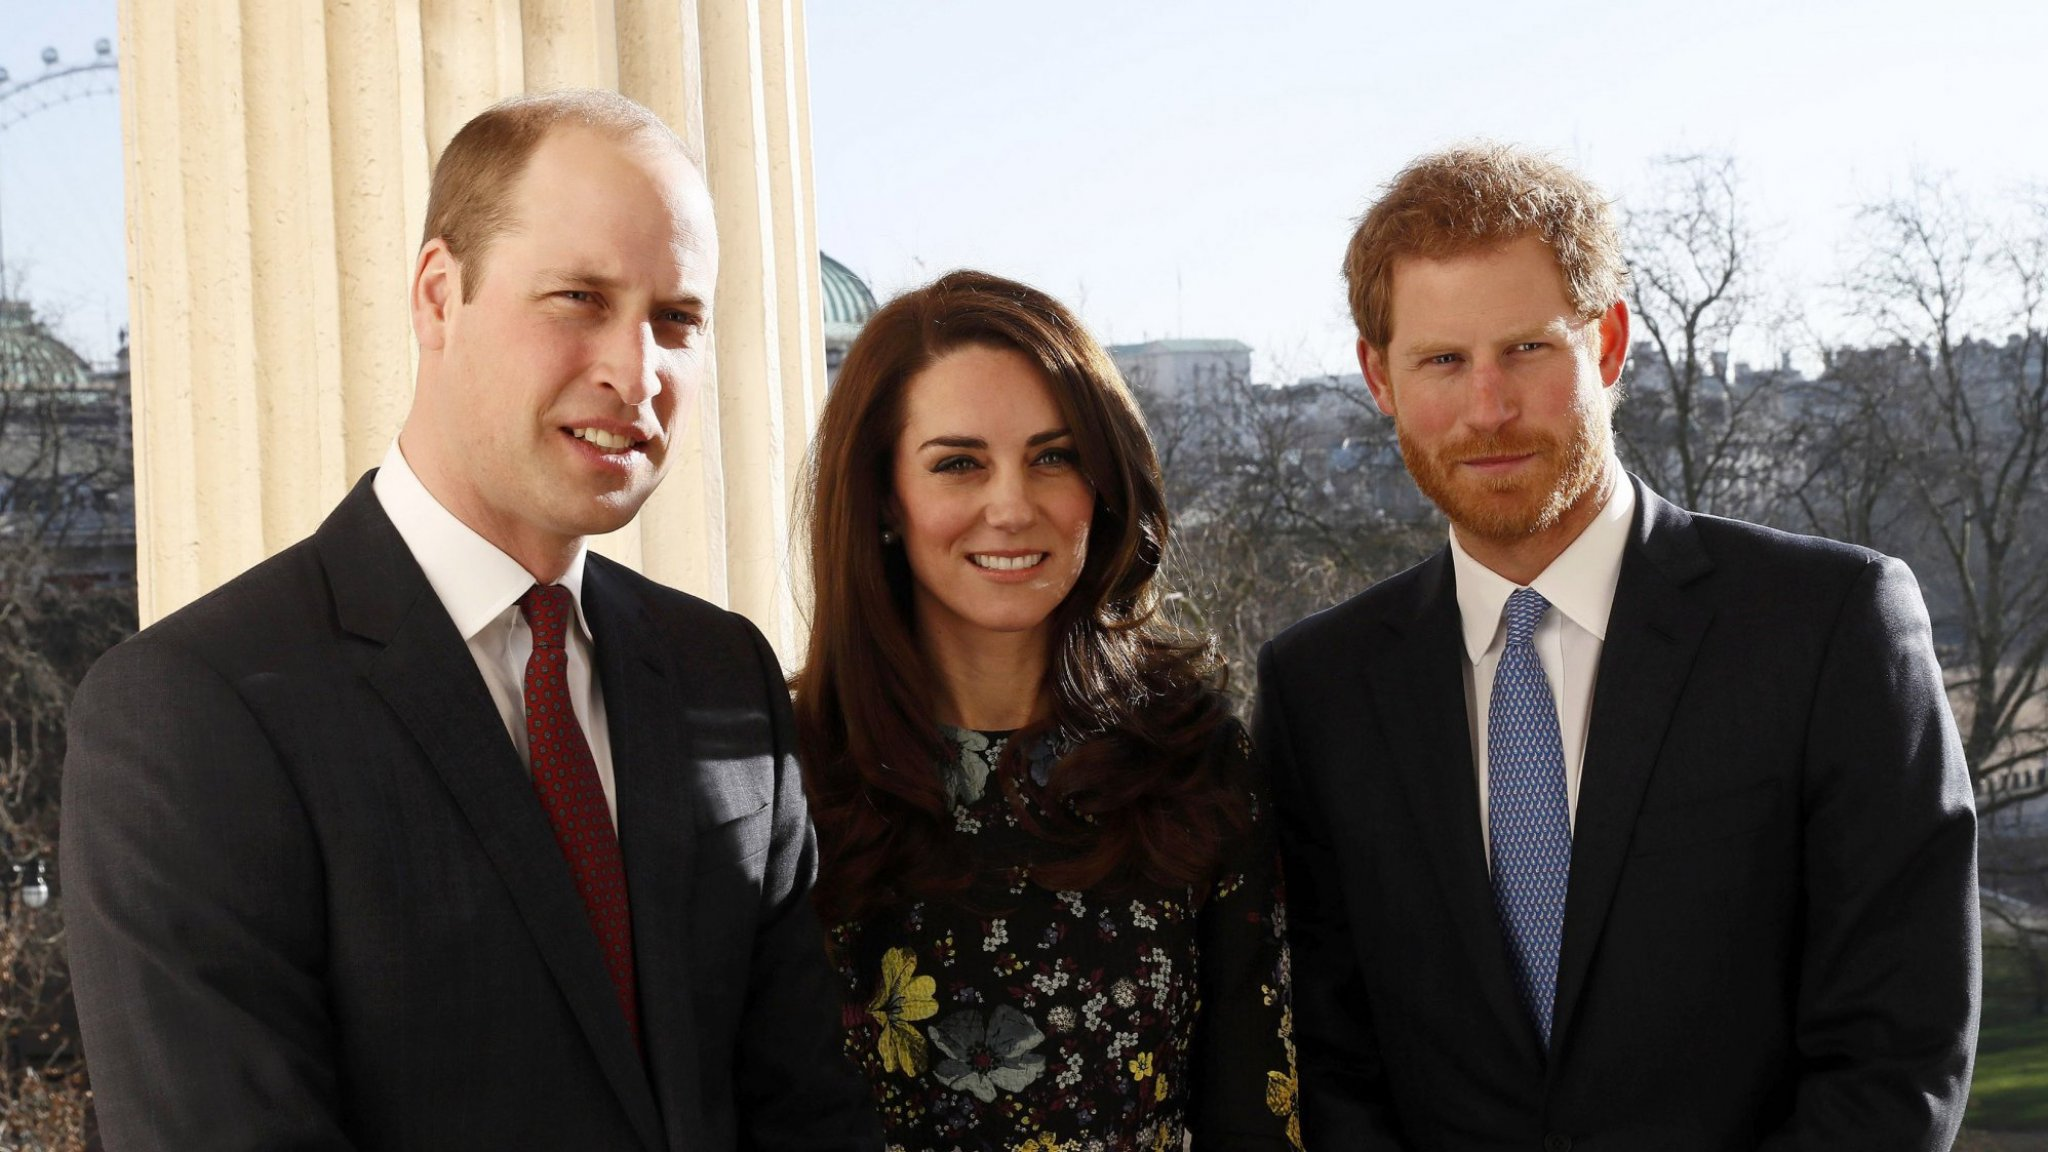 Kate served as a mediator during Philip's funeral